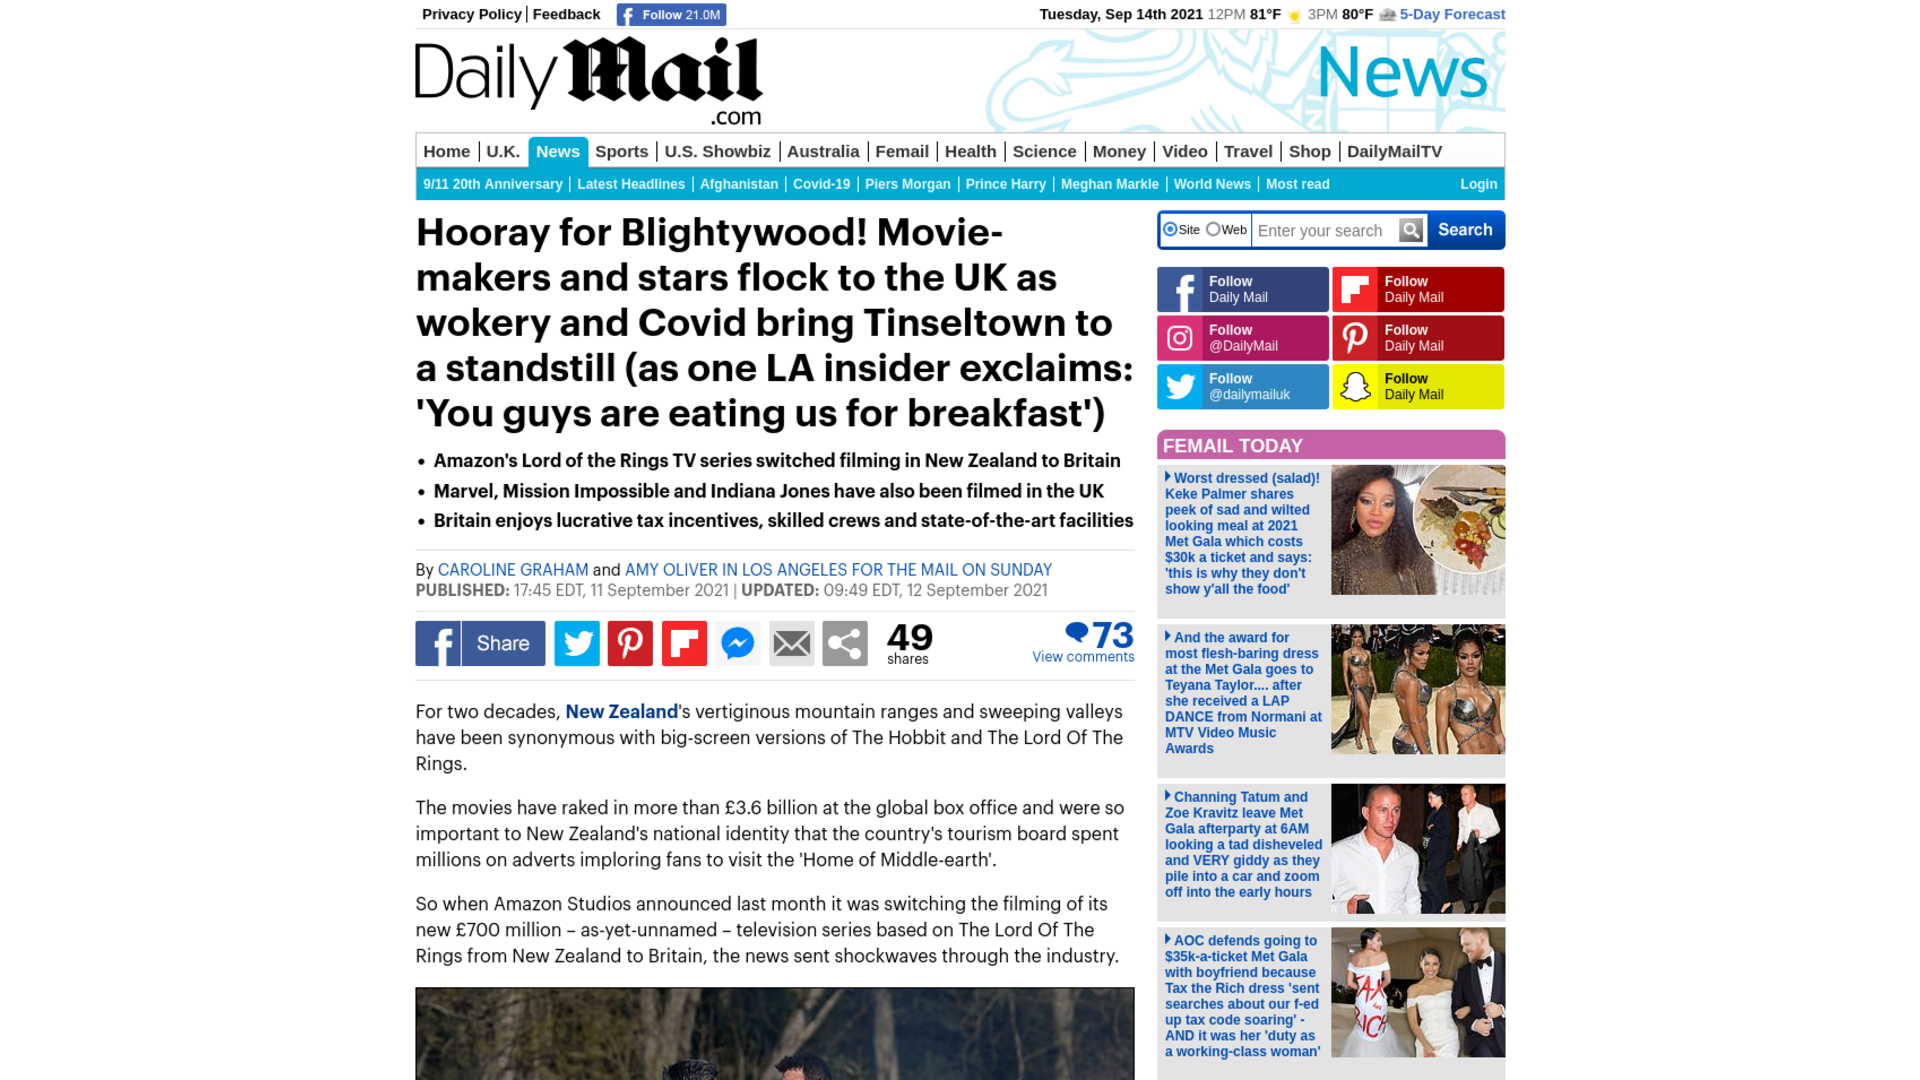 Fairness Rocks News Hooray for Blightywood! Movie-makers and stars flock to the UK as wokery and Covid bring Tinseltown to a standstill (as one LA insider exclaims: 'You guys are eating us for breakfast')